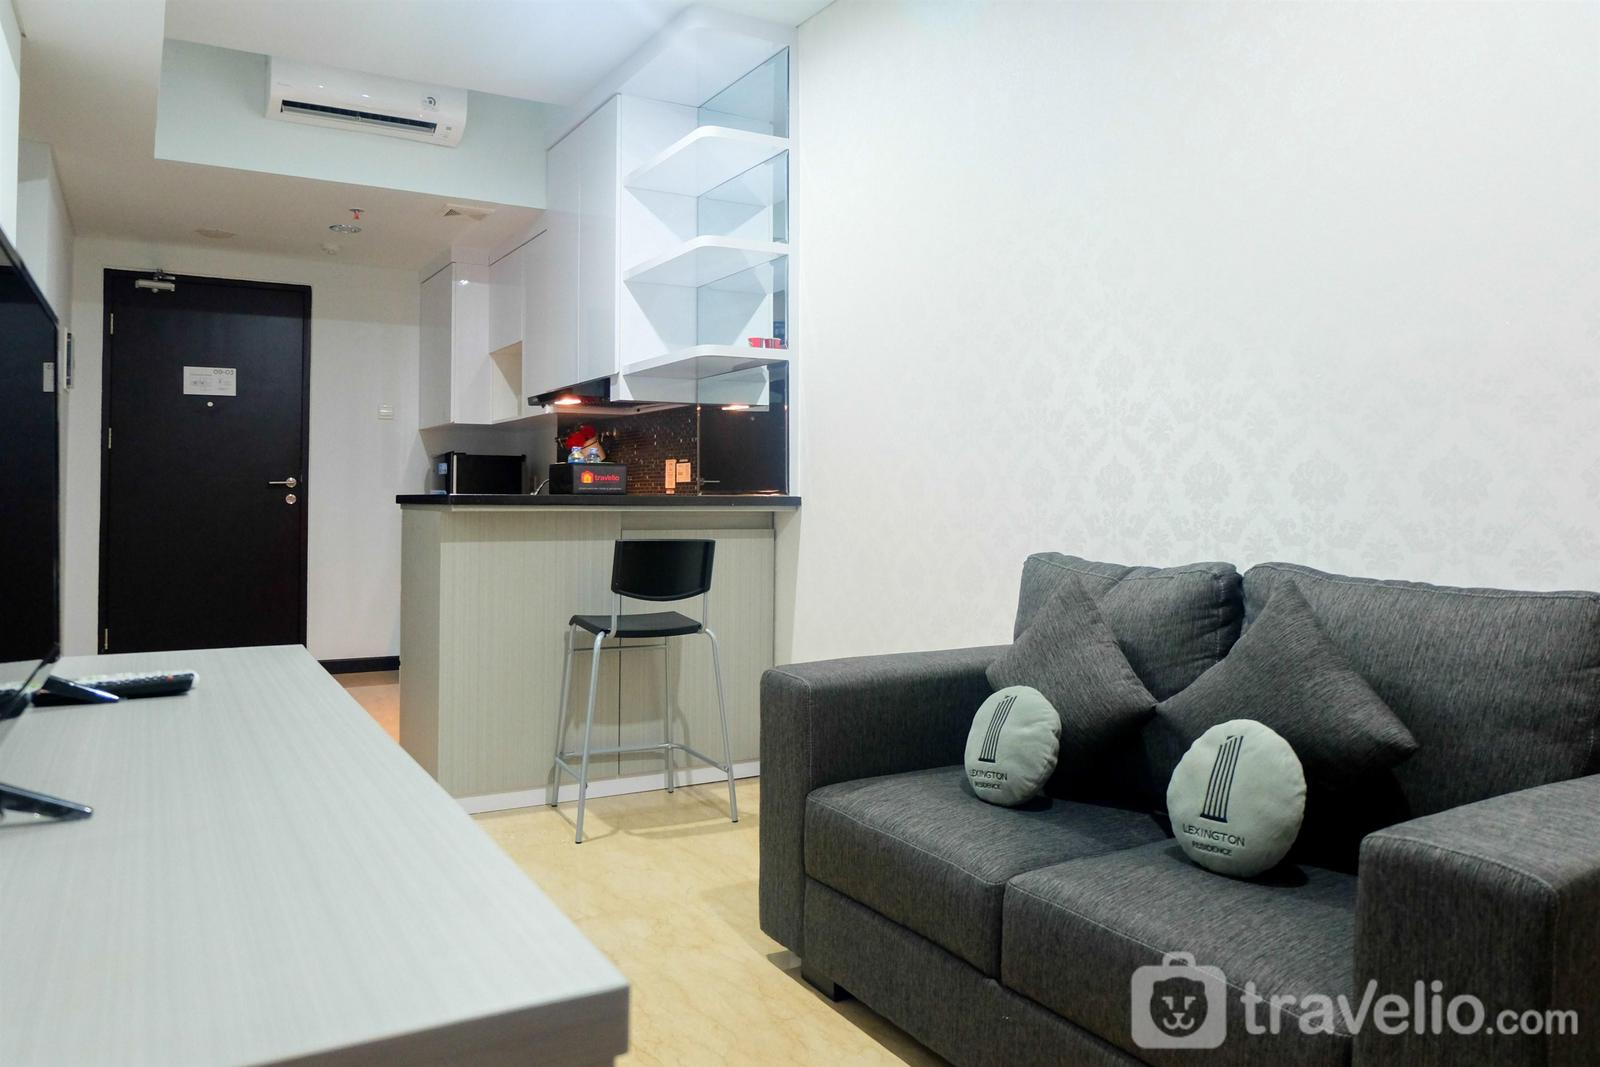 Lexington Apartment - Spacious and Comfortable 1BR Lexington Apartment By Travelio